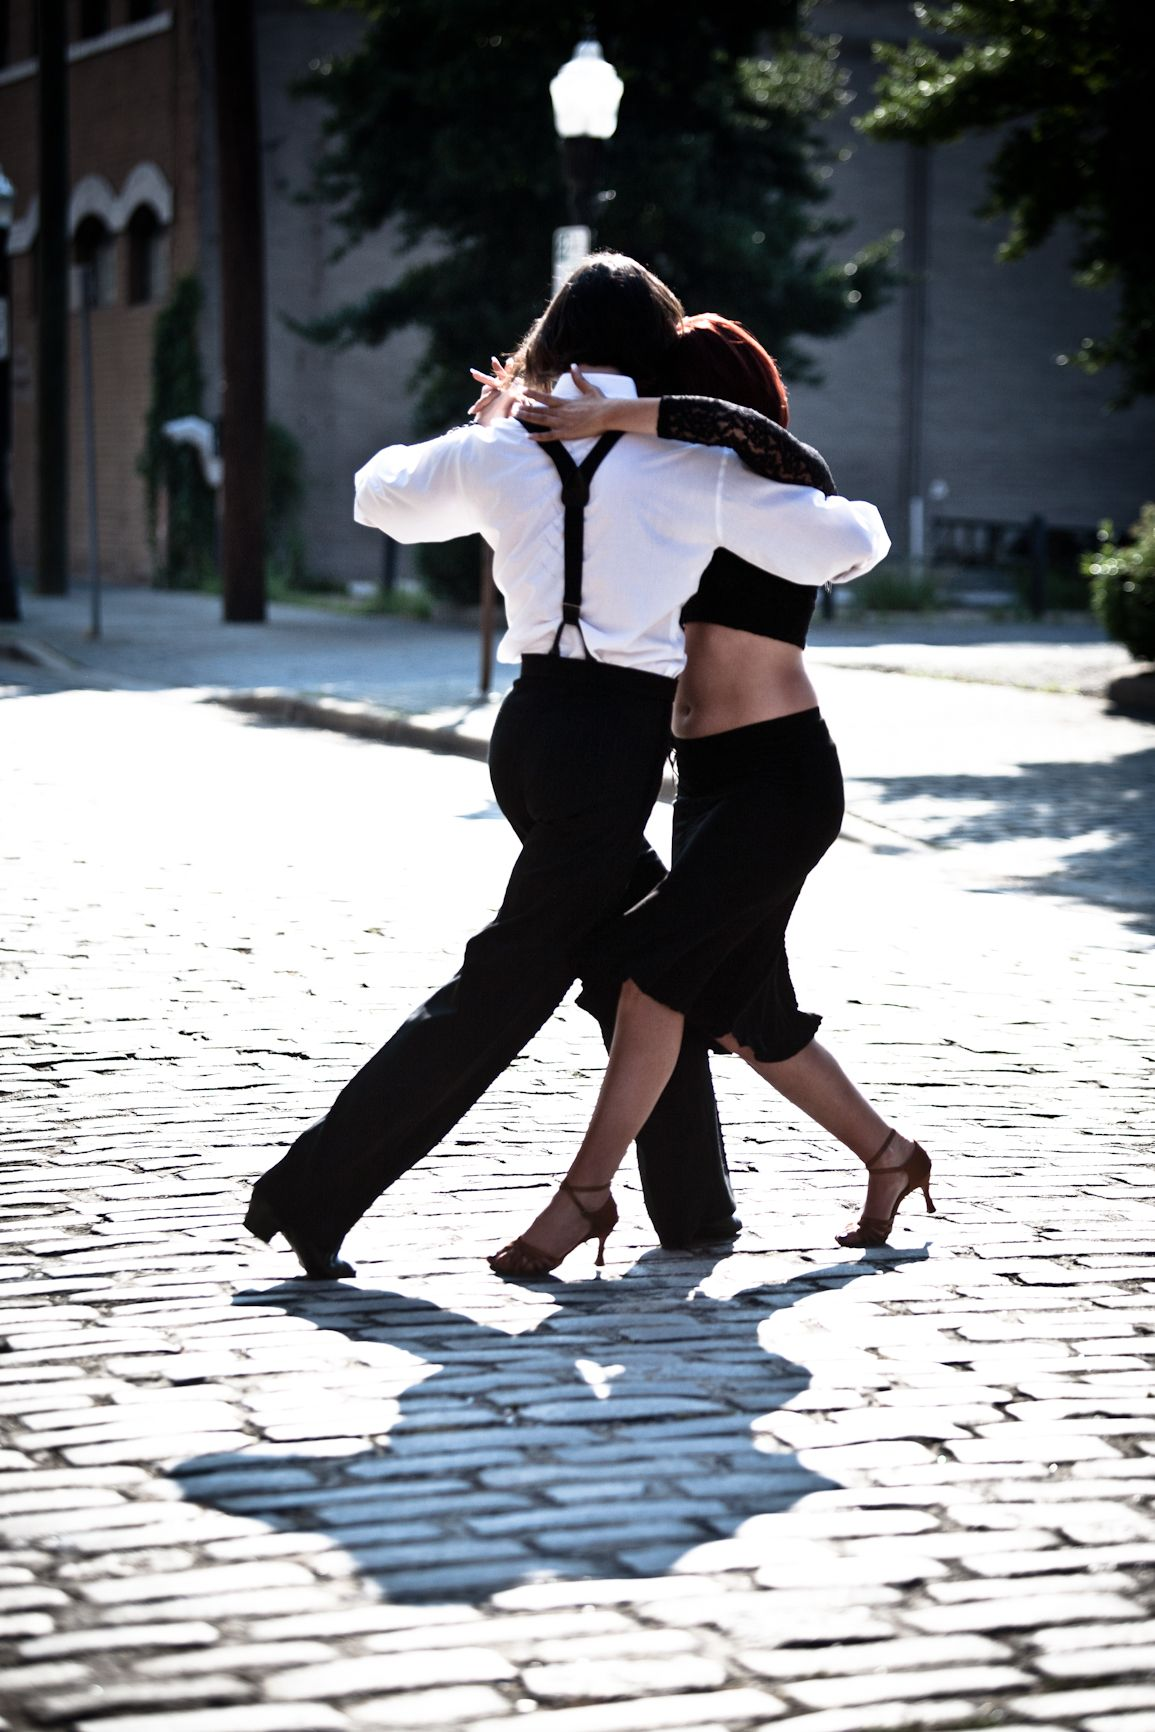 In the street during the Tango.